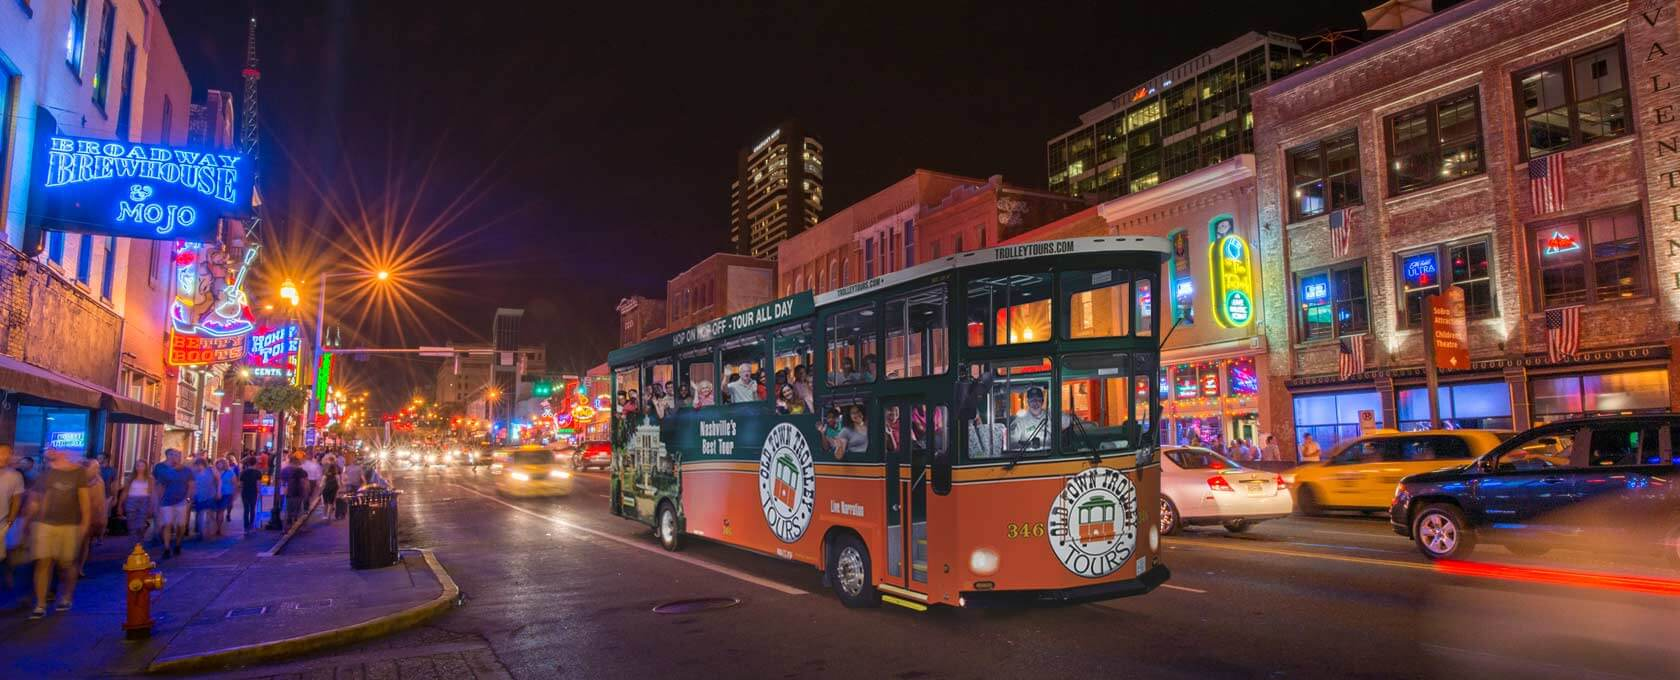 Nashville trolley driving through the city at night